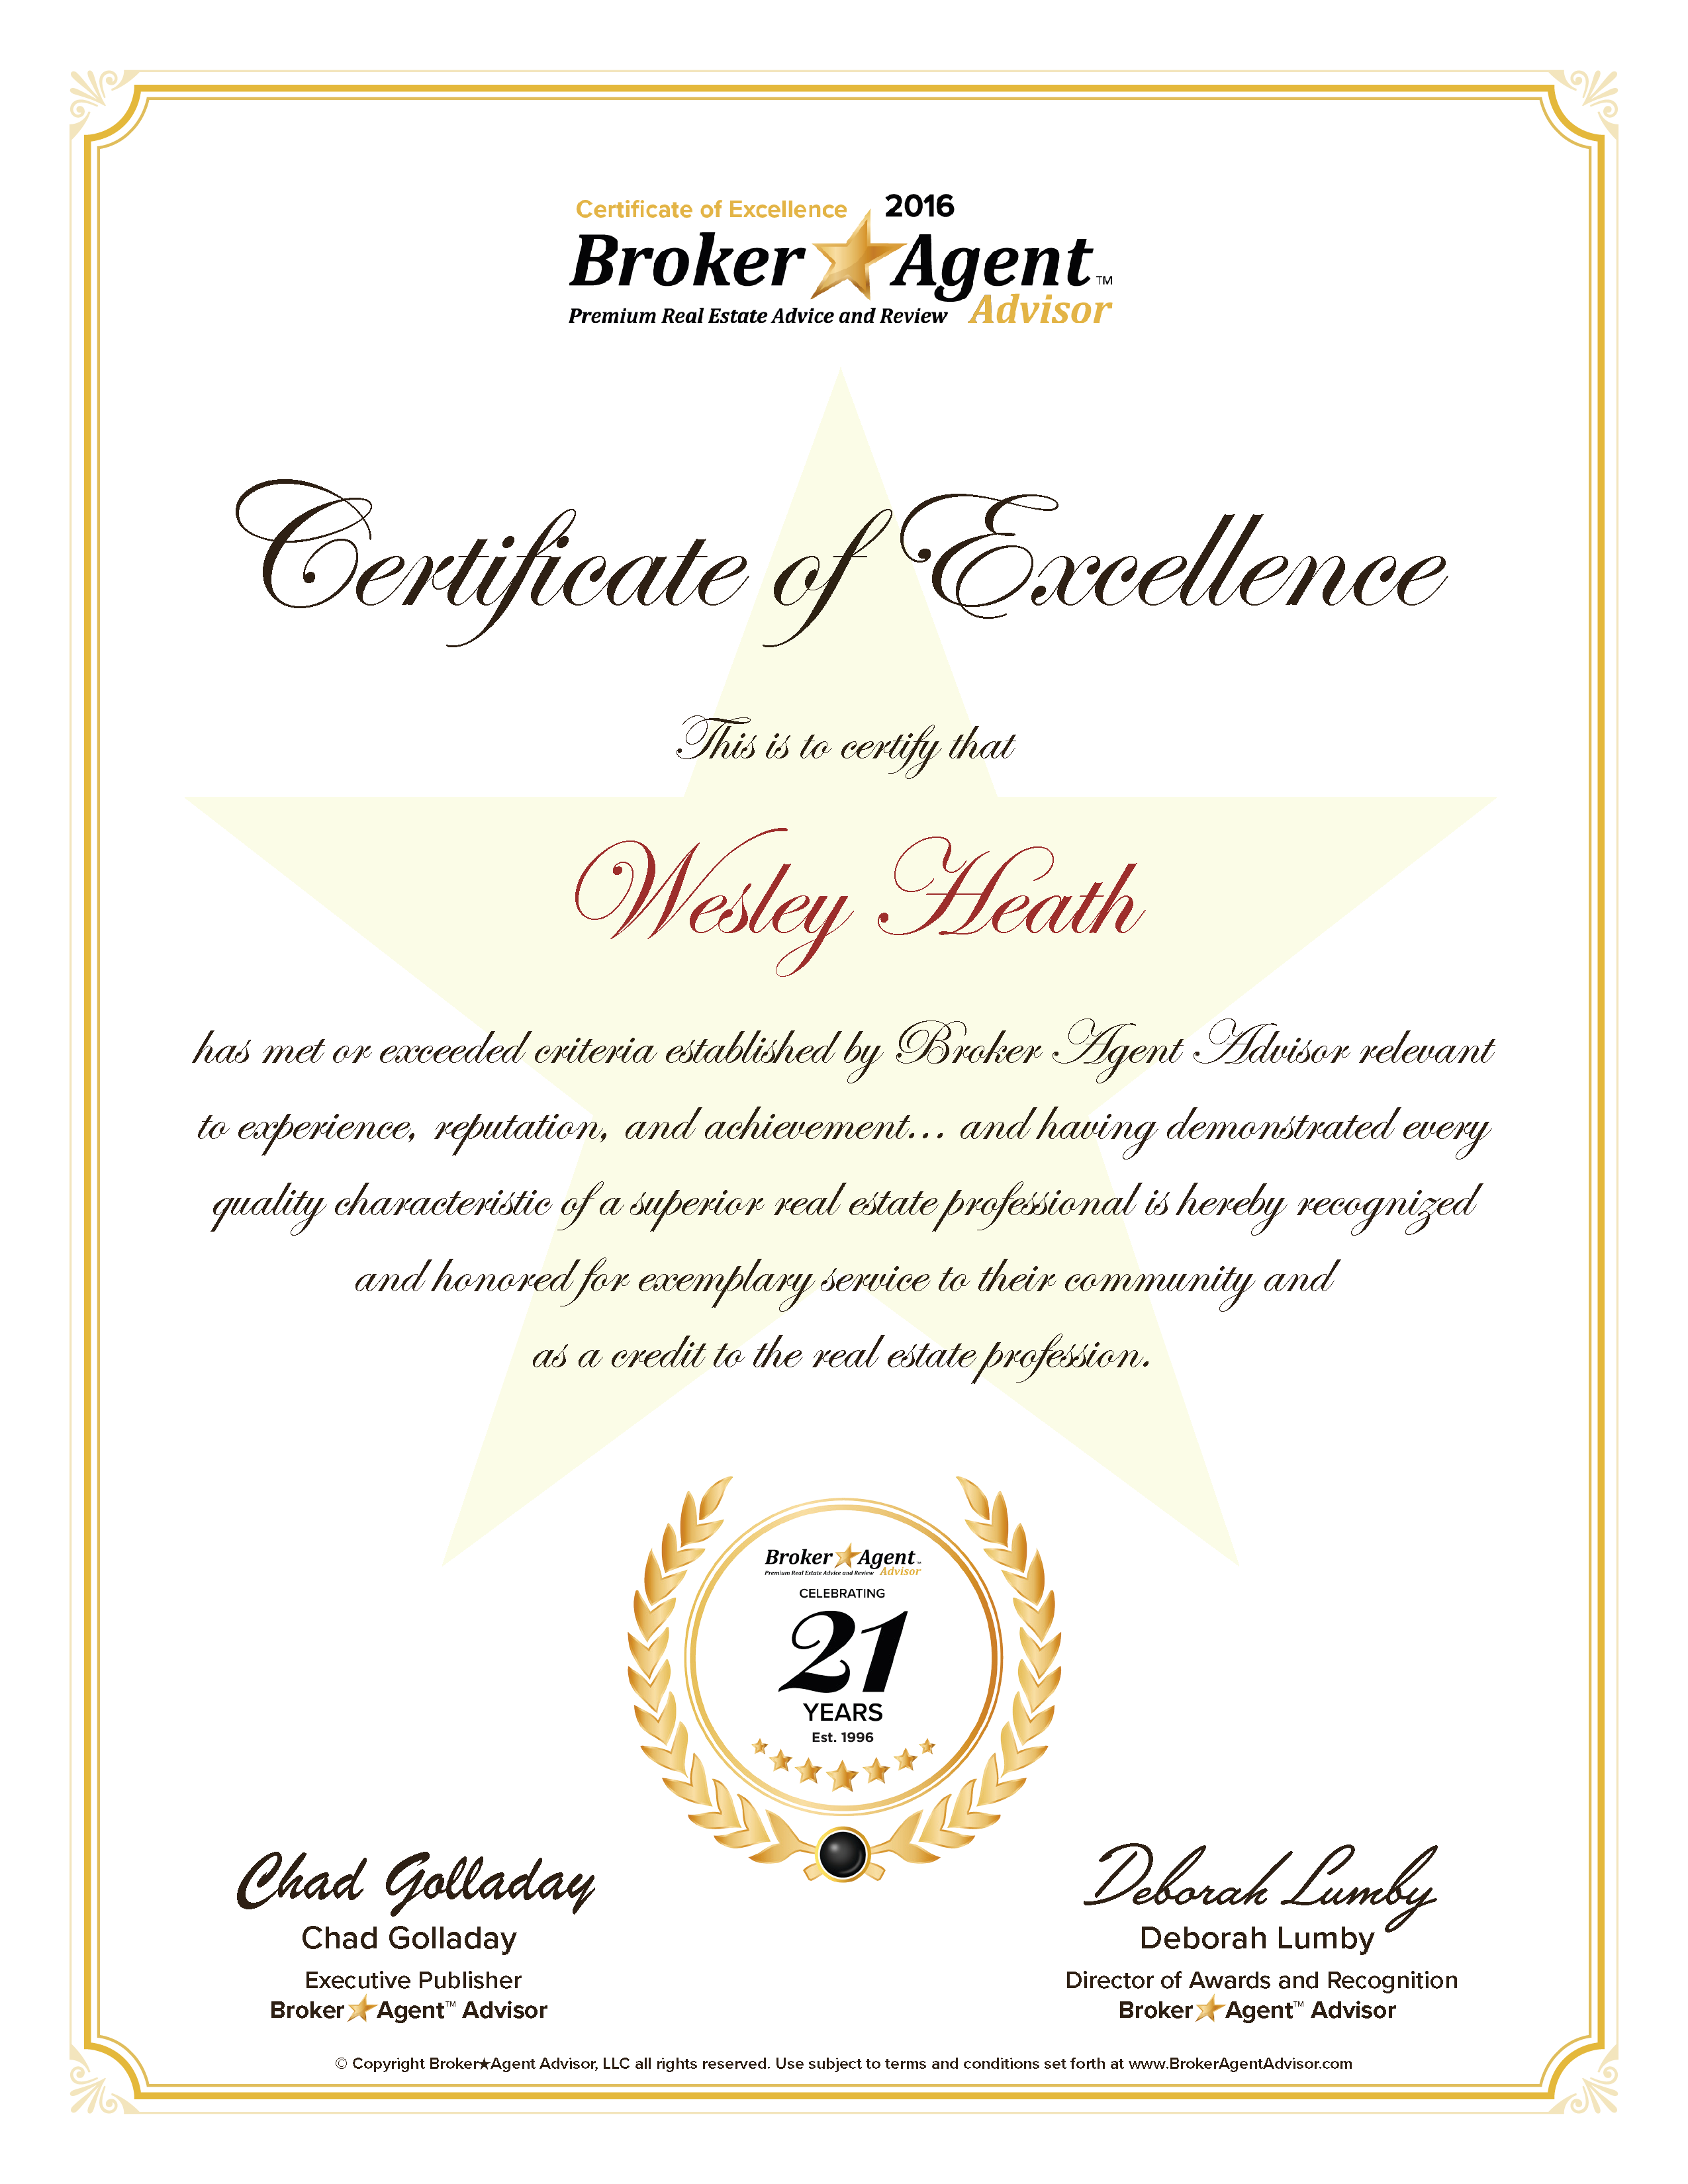 Wesley Heath Certificate of Excellence